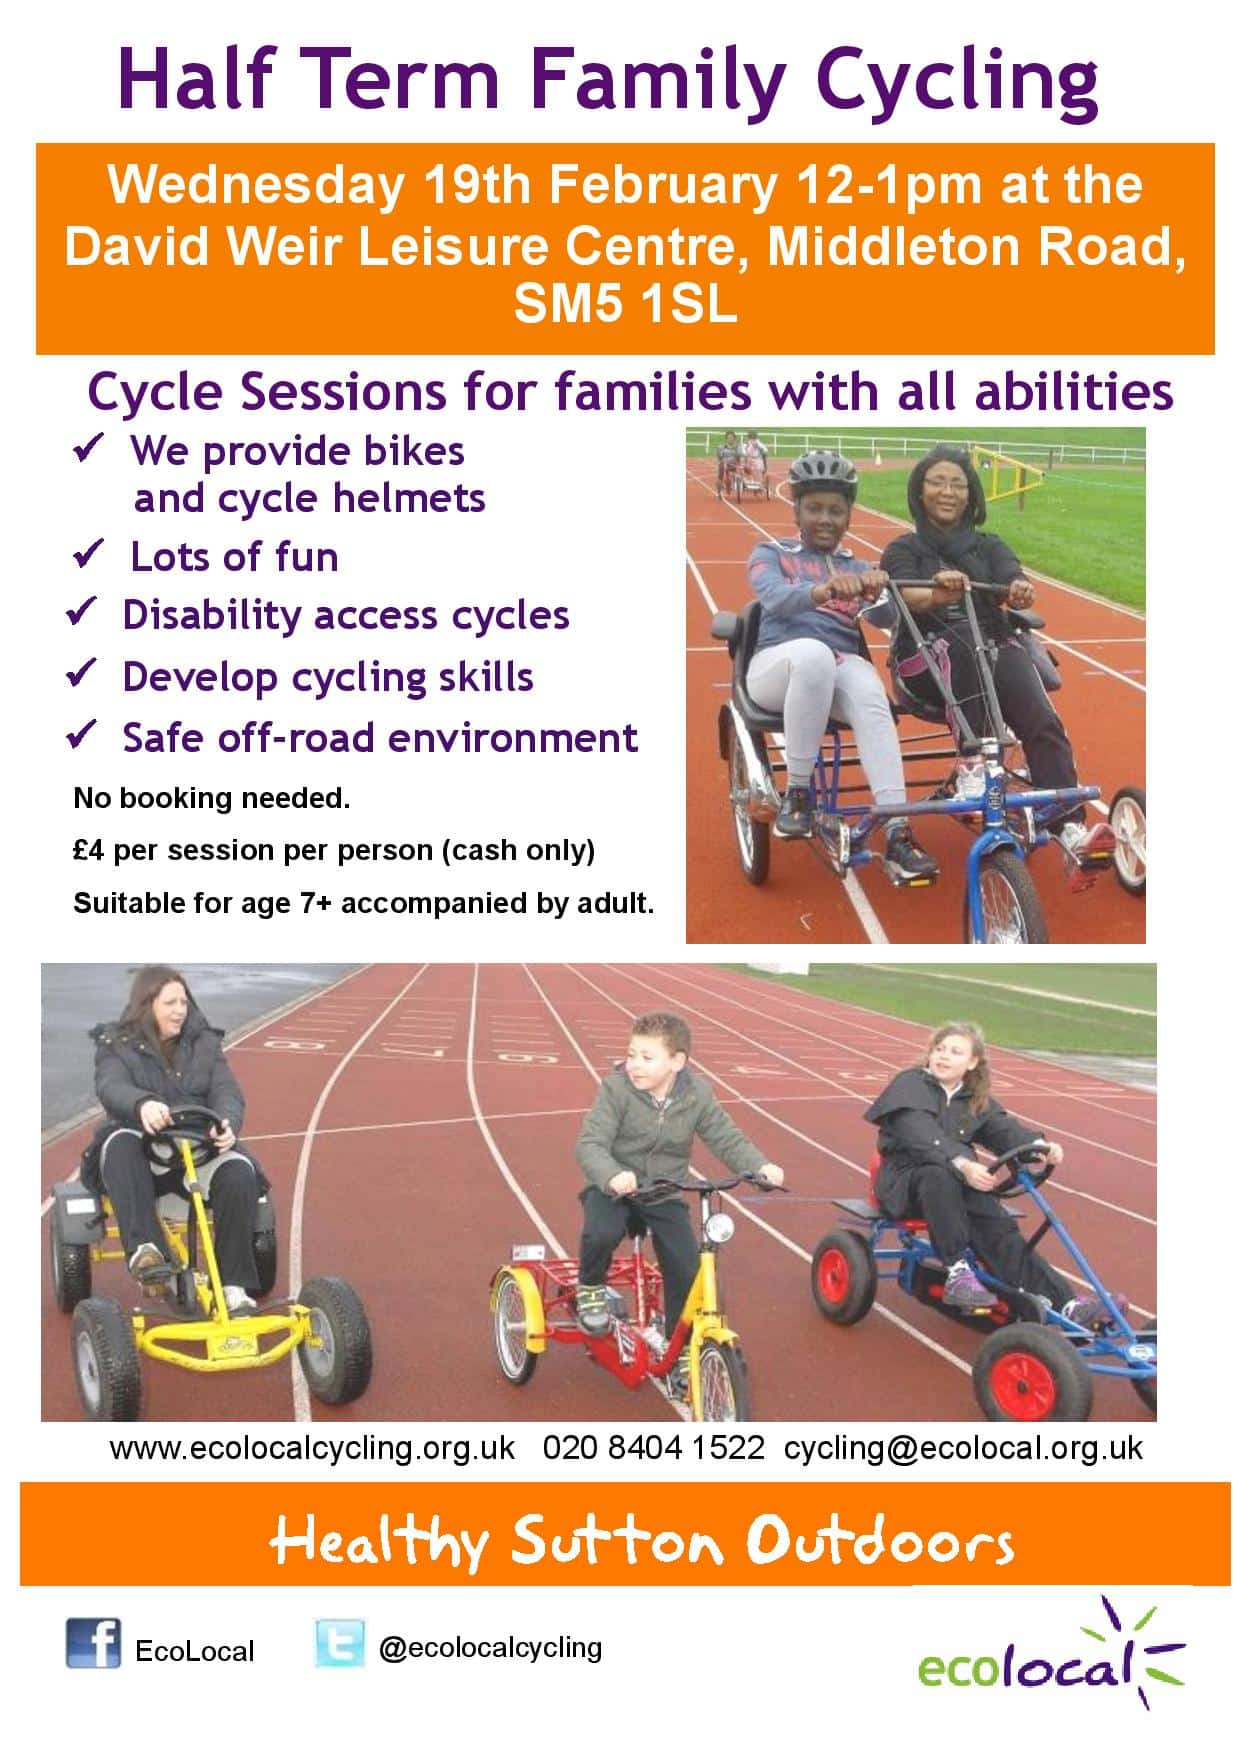 Cycle sessions for all of the family over the February half term